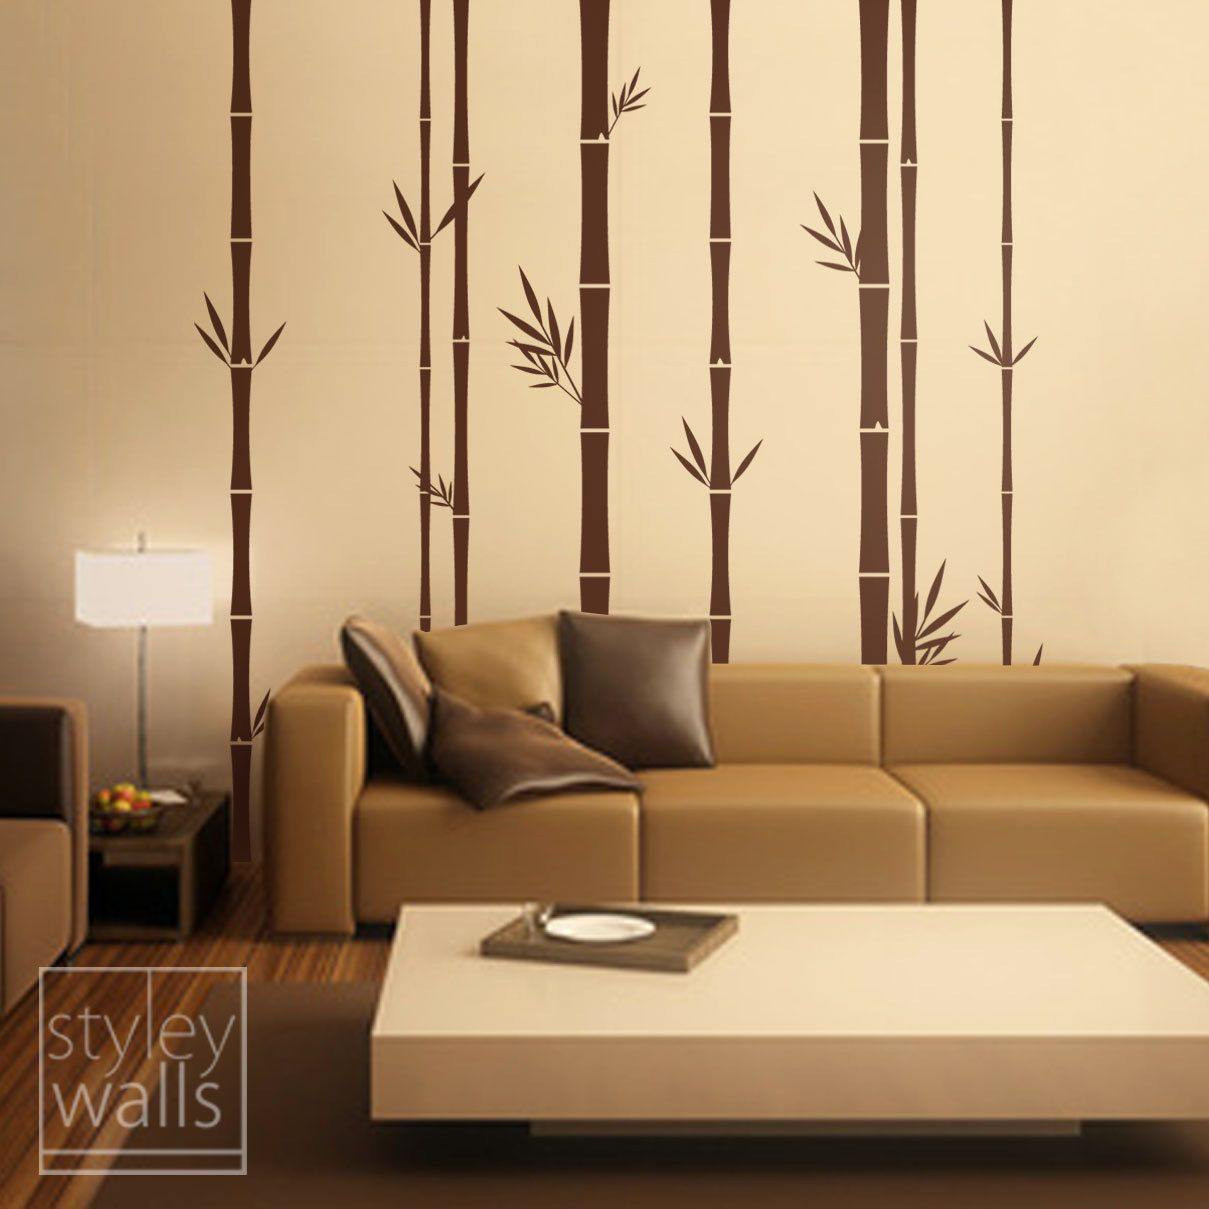 bamboo wall decal 100inch tall, set of 8 bamboo stalks vinyl wall